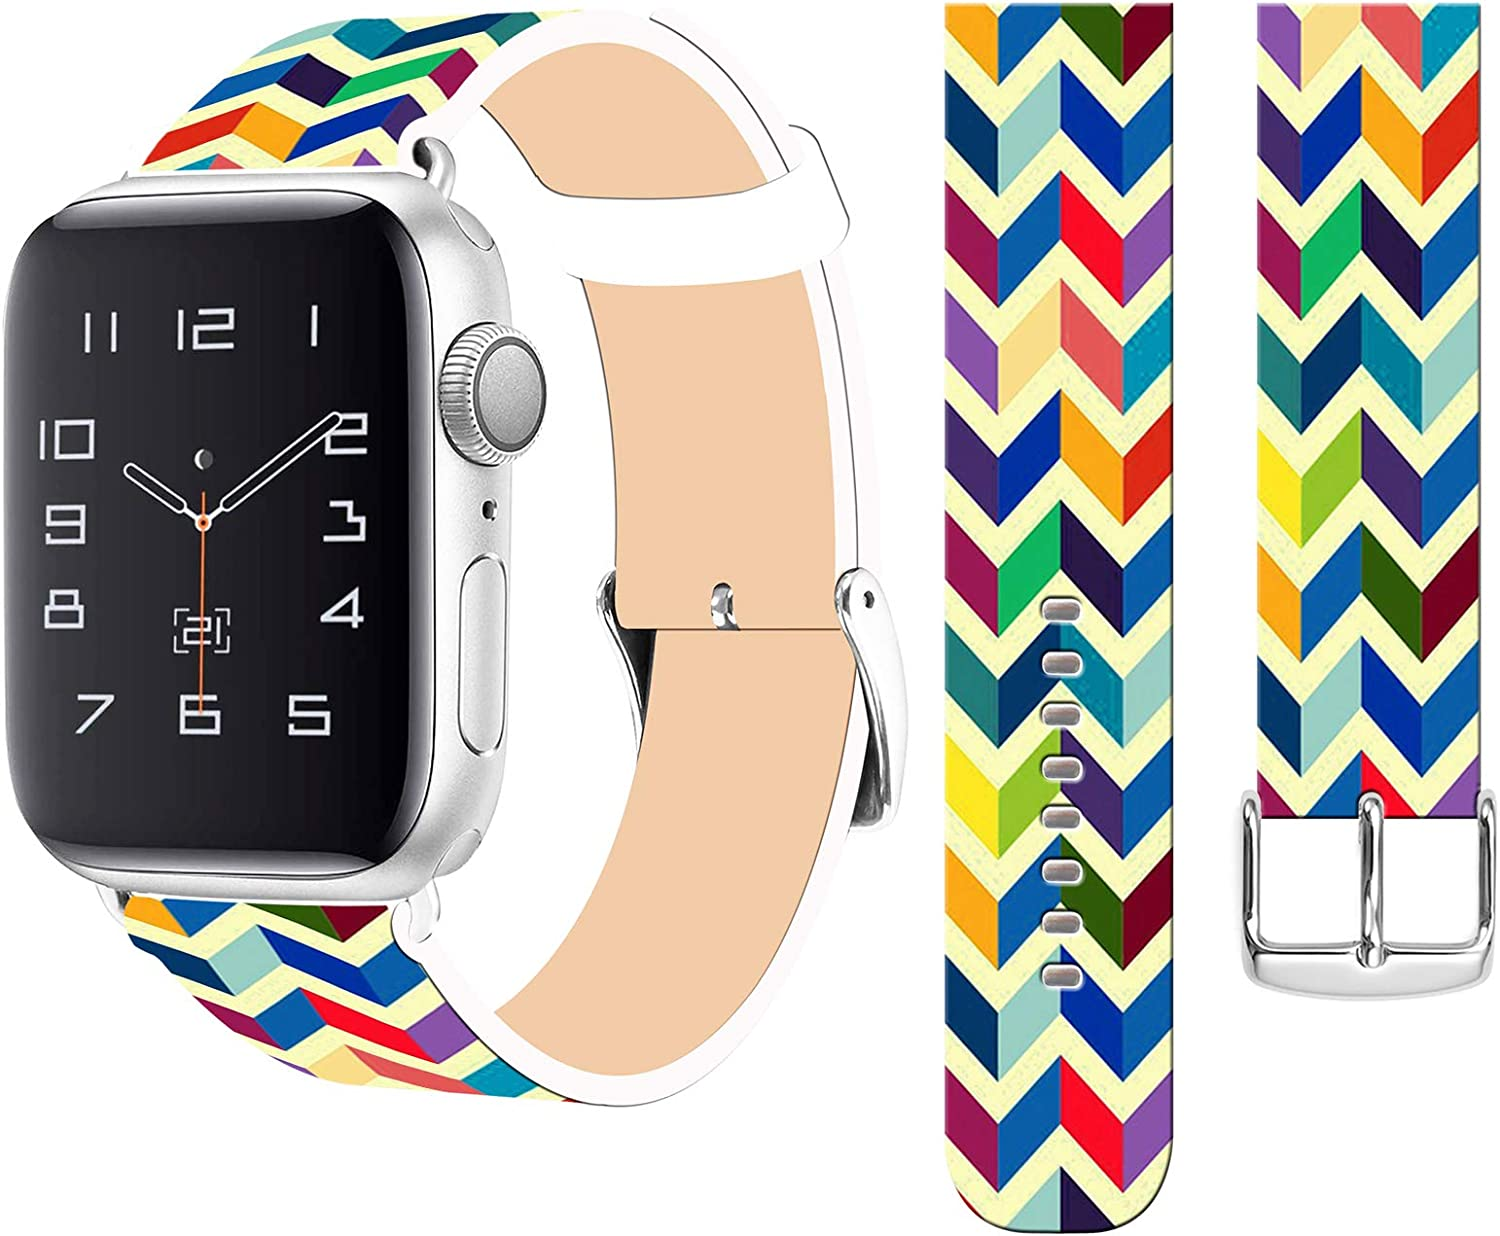 Strap Compatible for Apple Watch Series SE/6/5/4/3/2/1 38mm/40mm Pattern - ENDIY Designer Leather Fashionable Band Replacement for Iwatch Candy Rainbow Colorful Print Girly Design